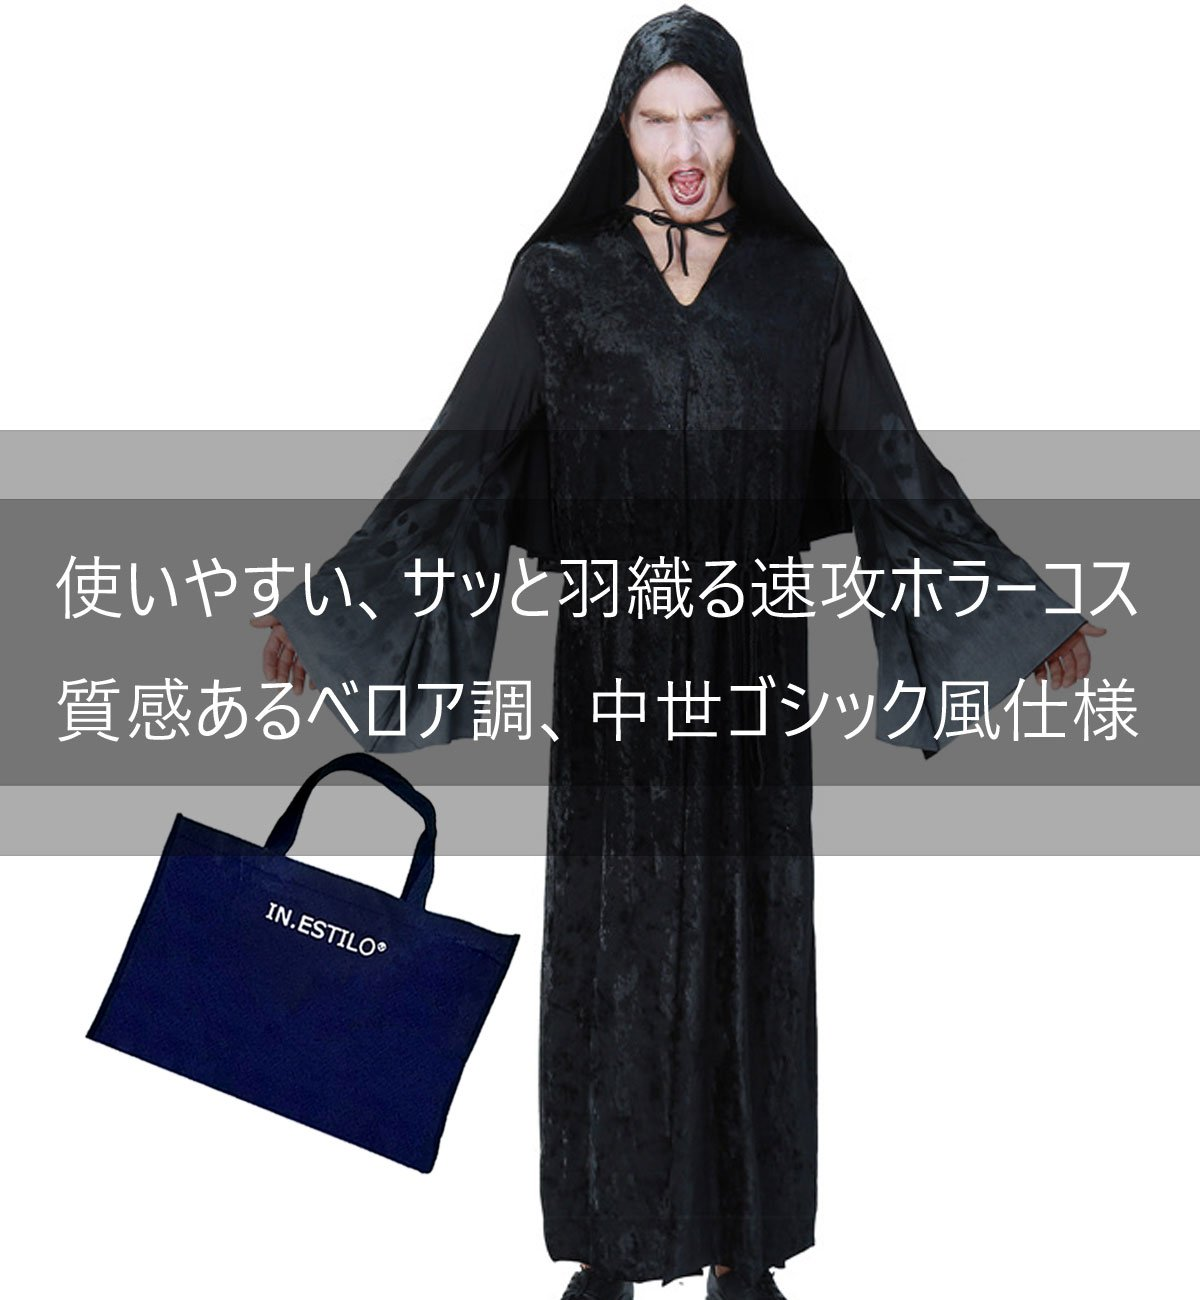 Amazon.com: Ghost Patterned Robe Costume Hombres Mujeres ...